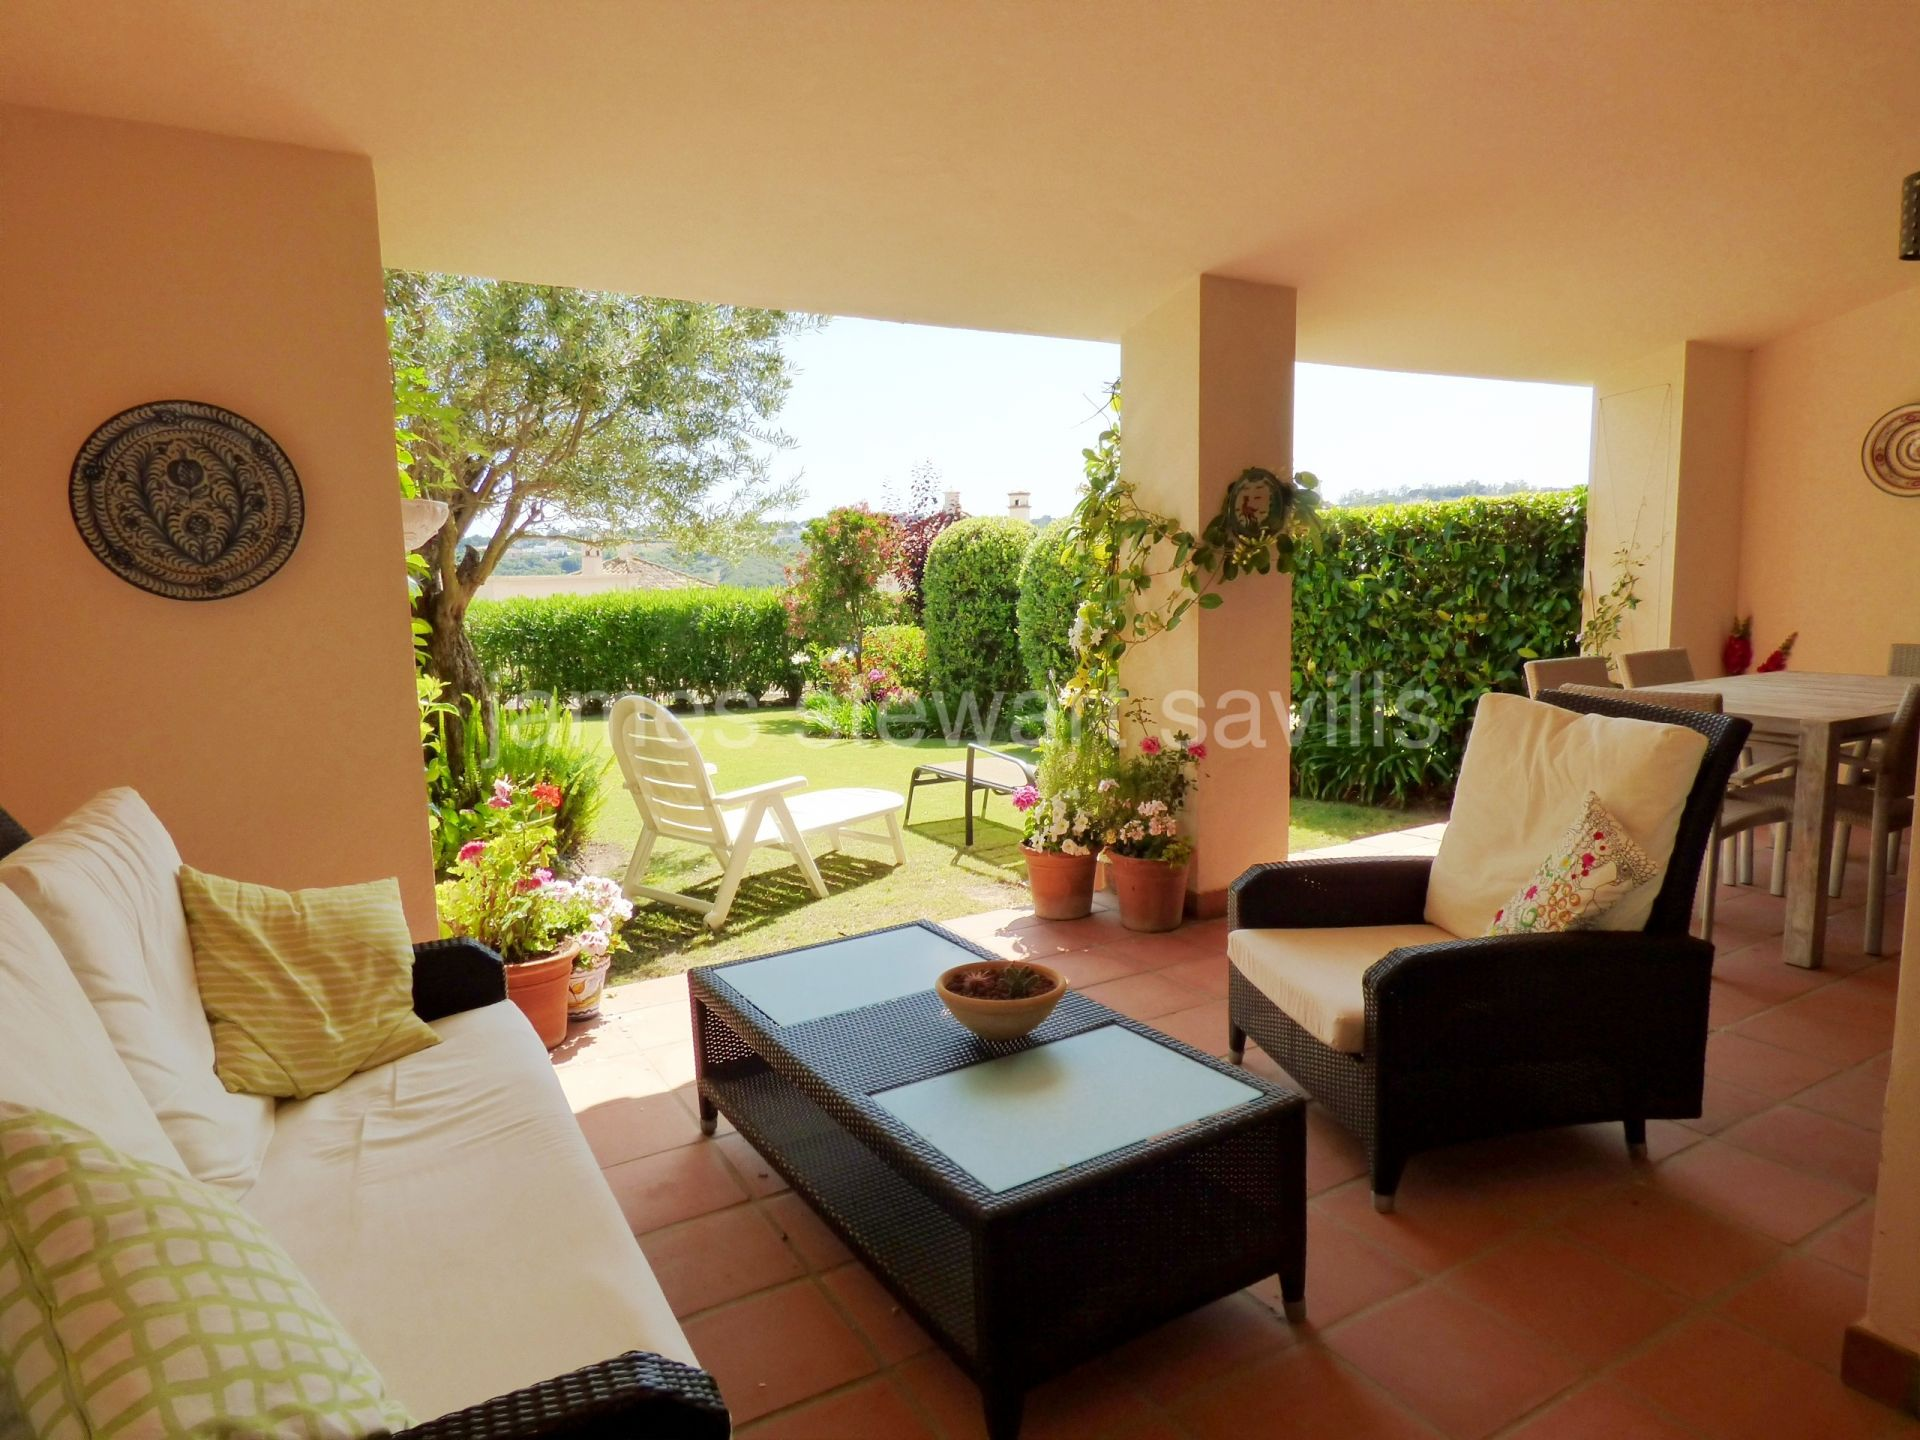 Town House for sale in Los Cortijos de la Reserva, Sotogrande